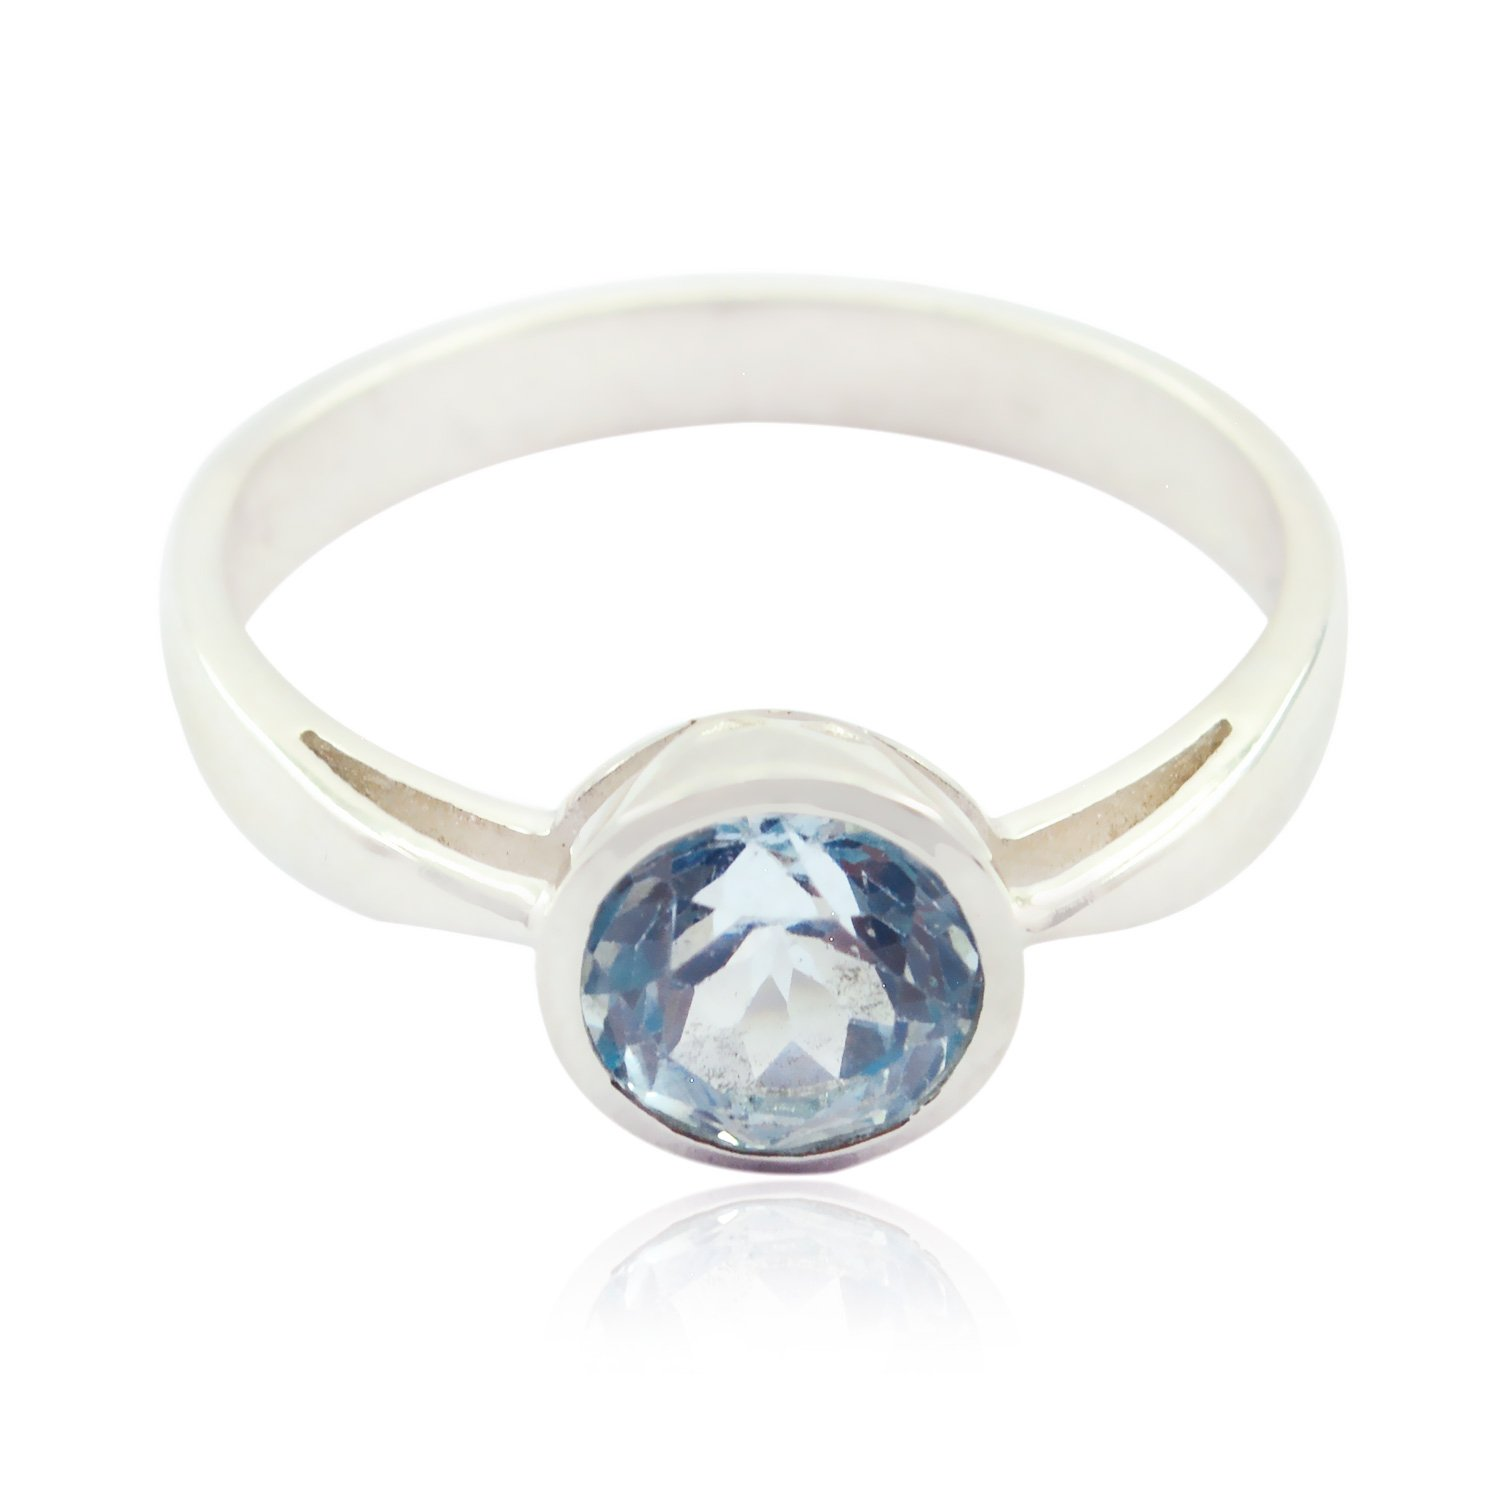 Lovely Gemstones Round Faceted Blue Topaz Rings Sterling Silver Blue Blue Topaz Lovely Gemstones Ring Wholesale Jewellery Shops Gift Name Ring